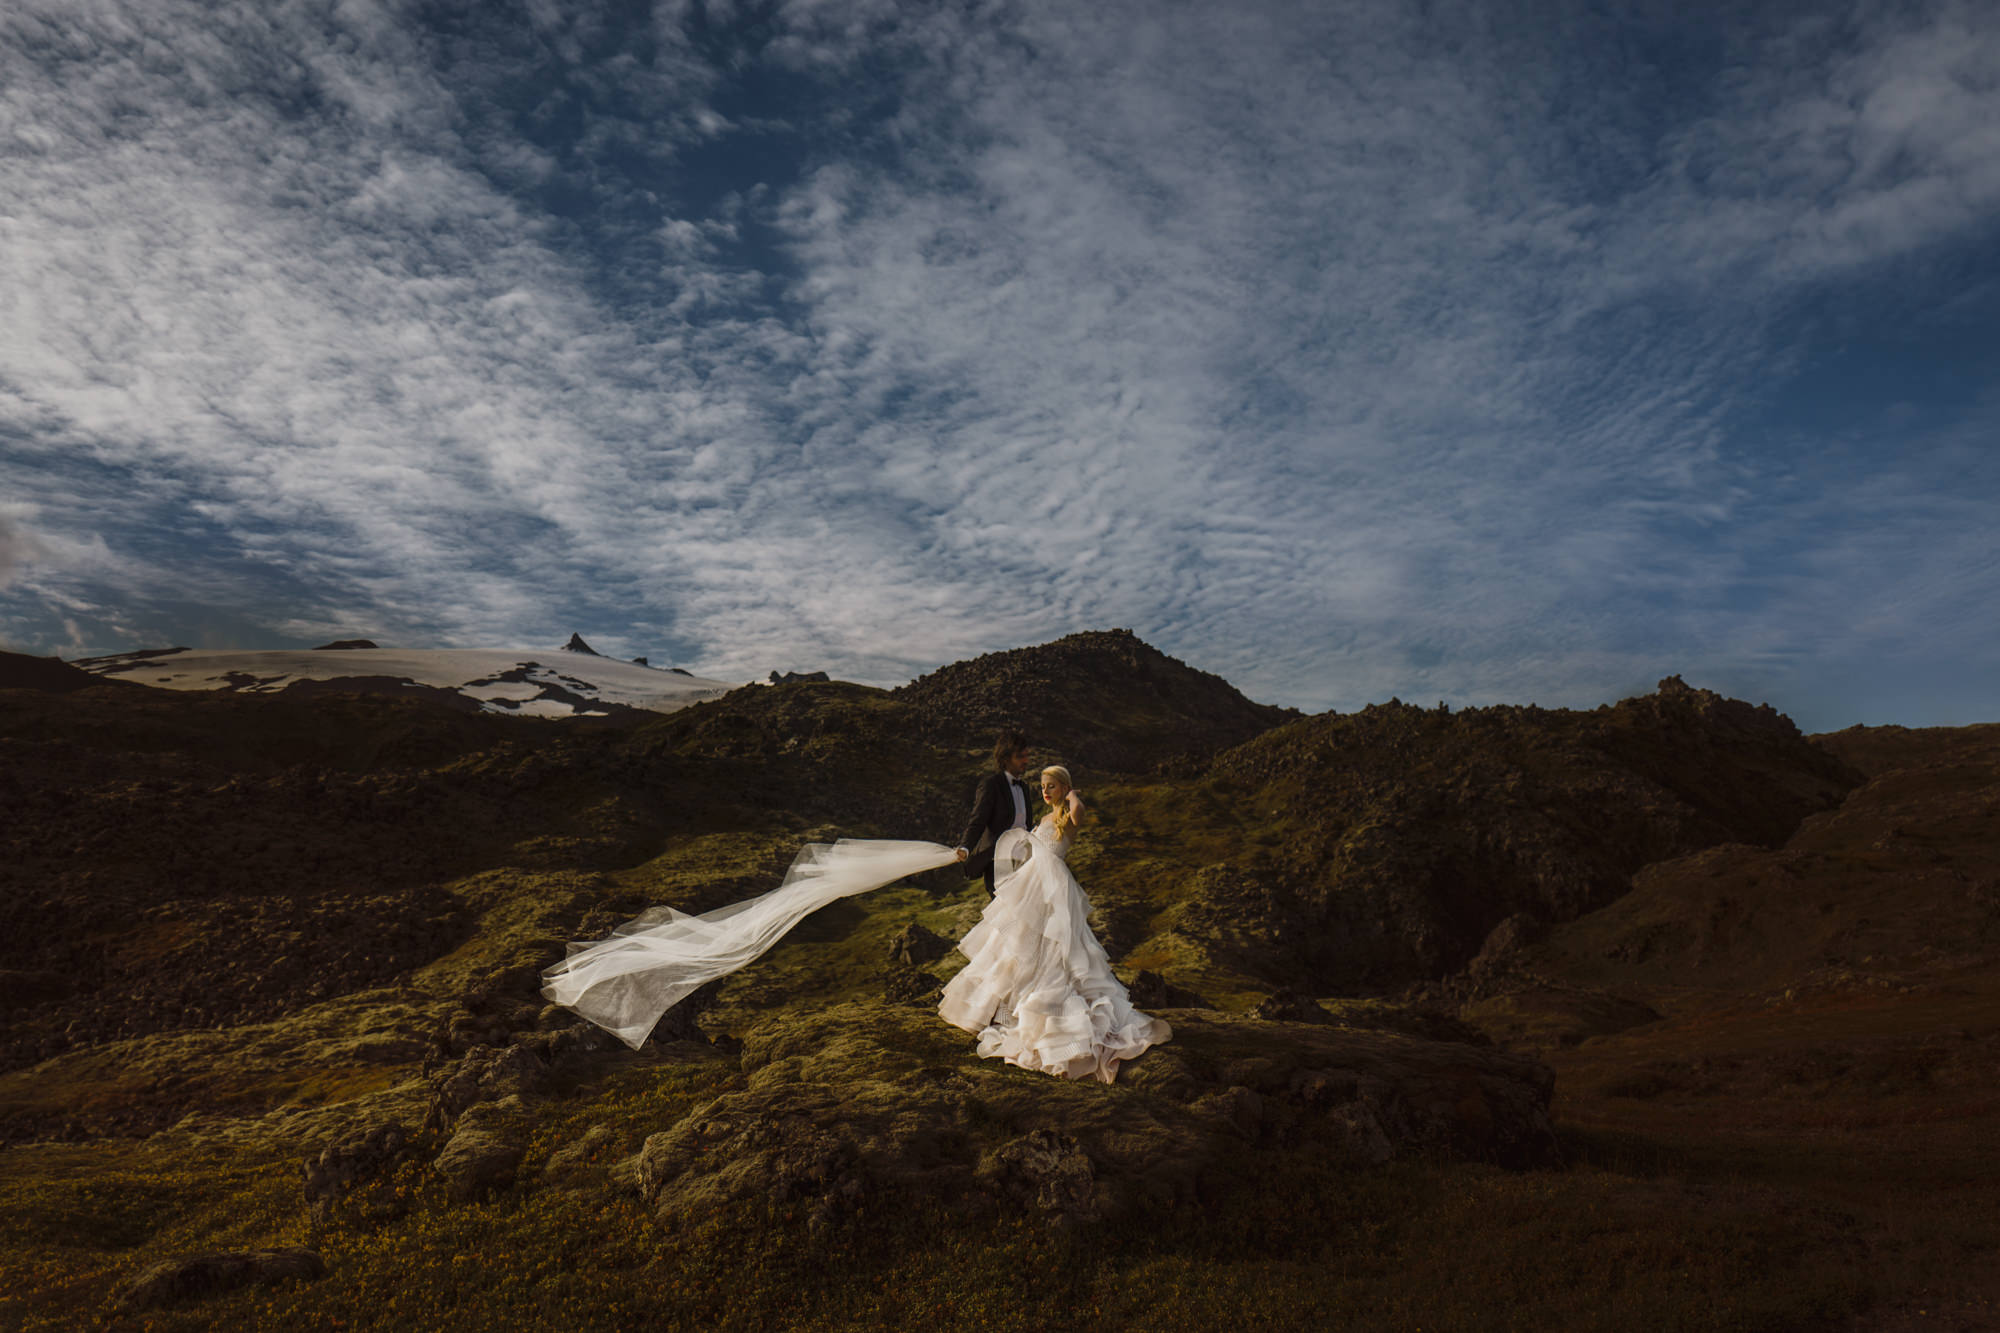 elopement photo by Gabe McClintock